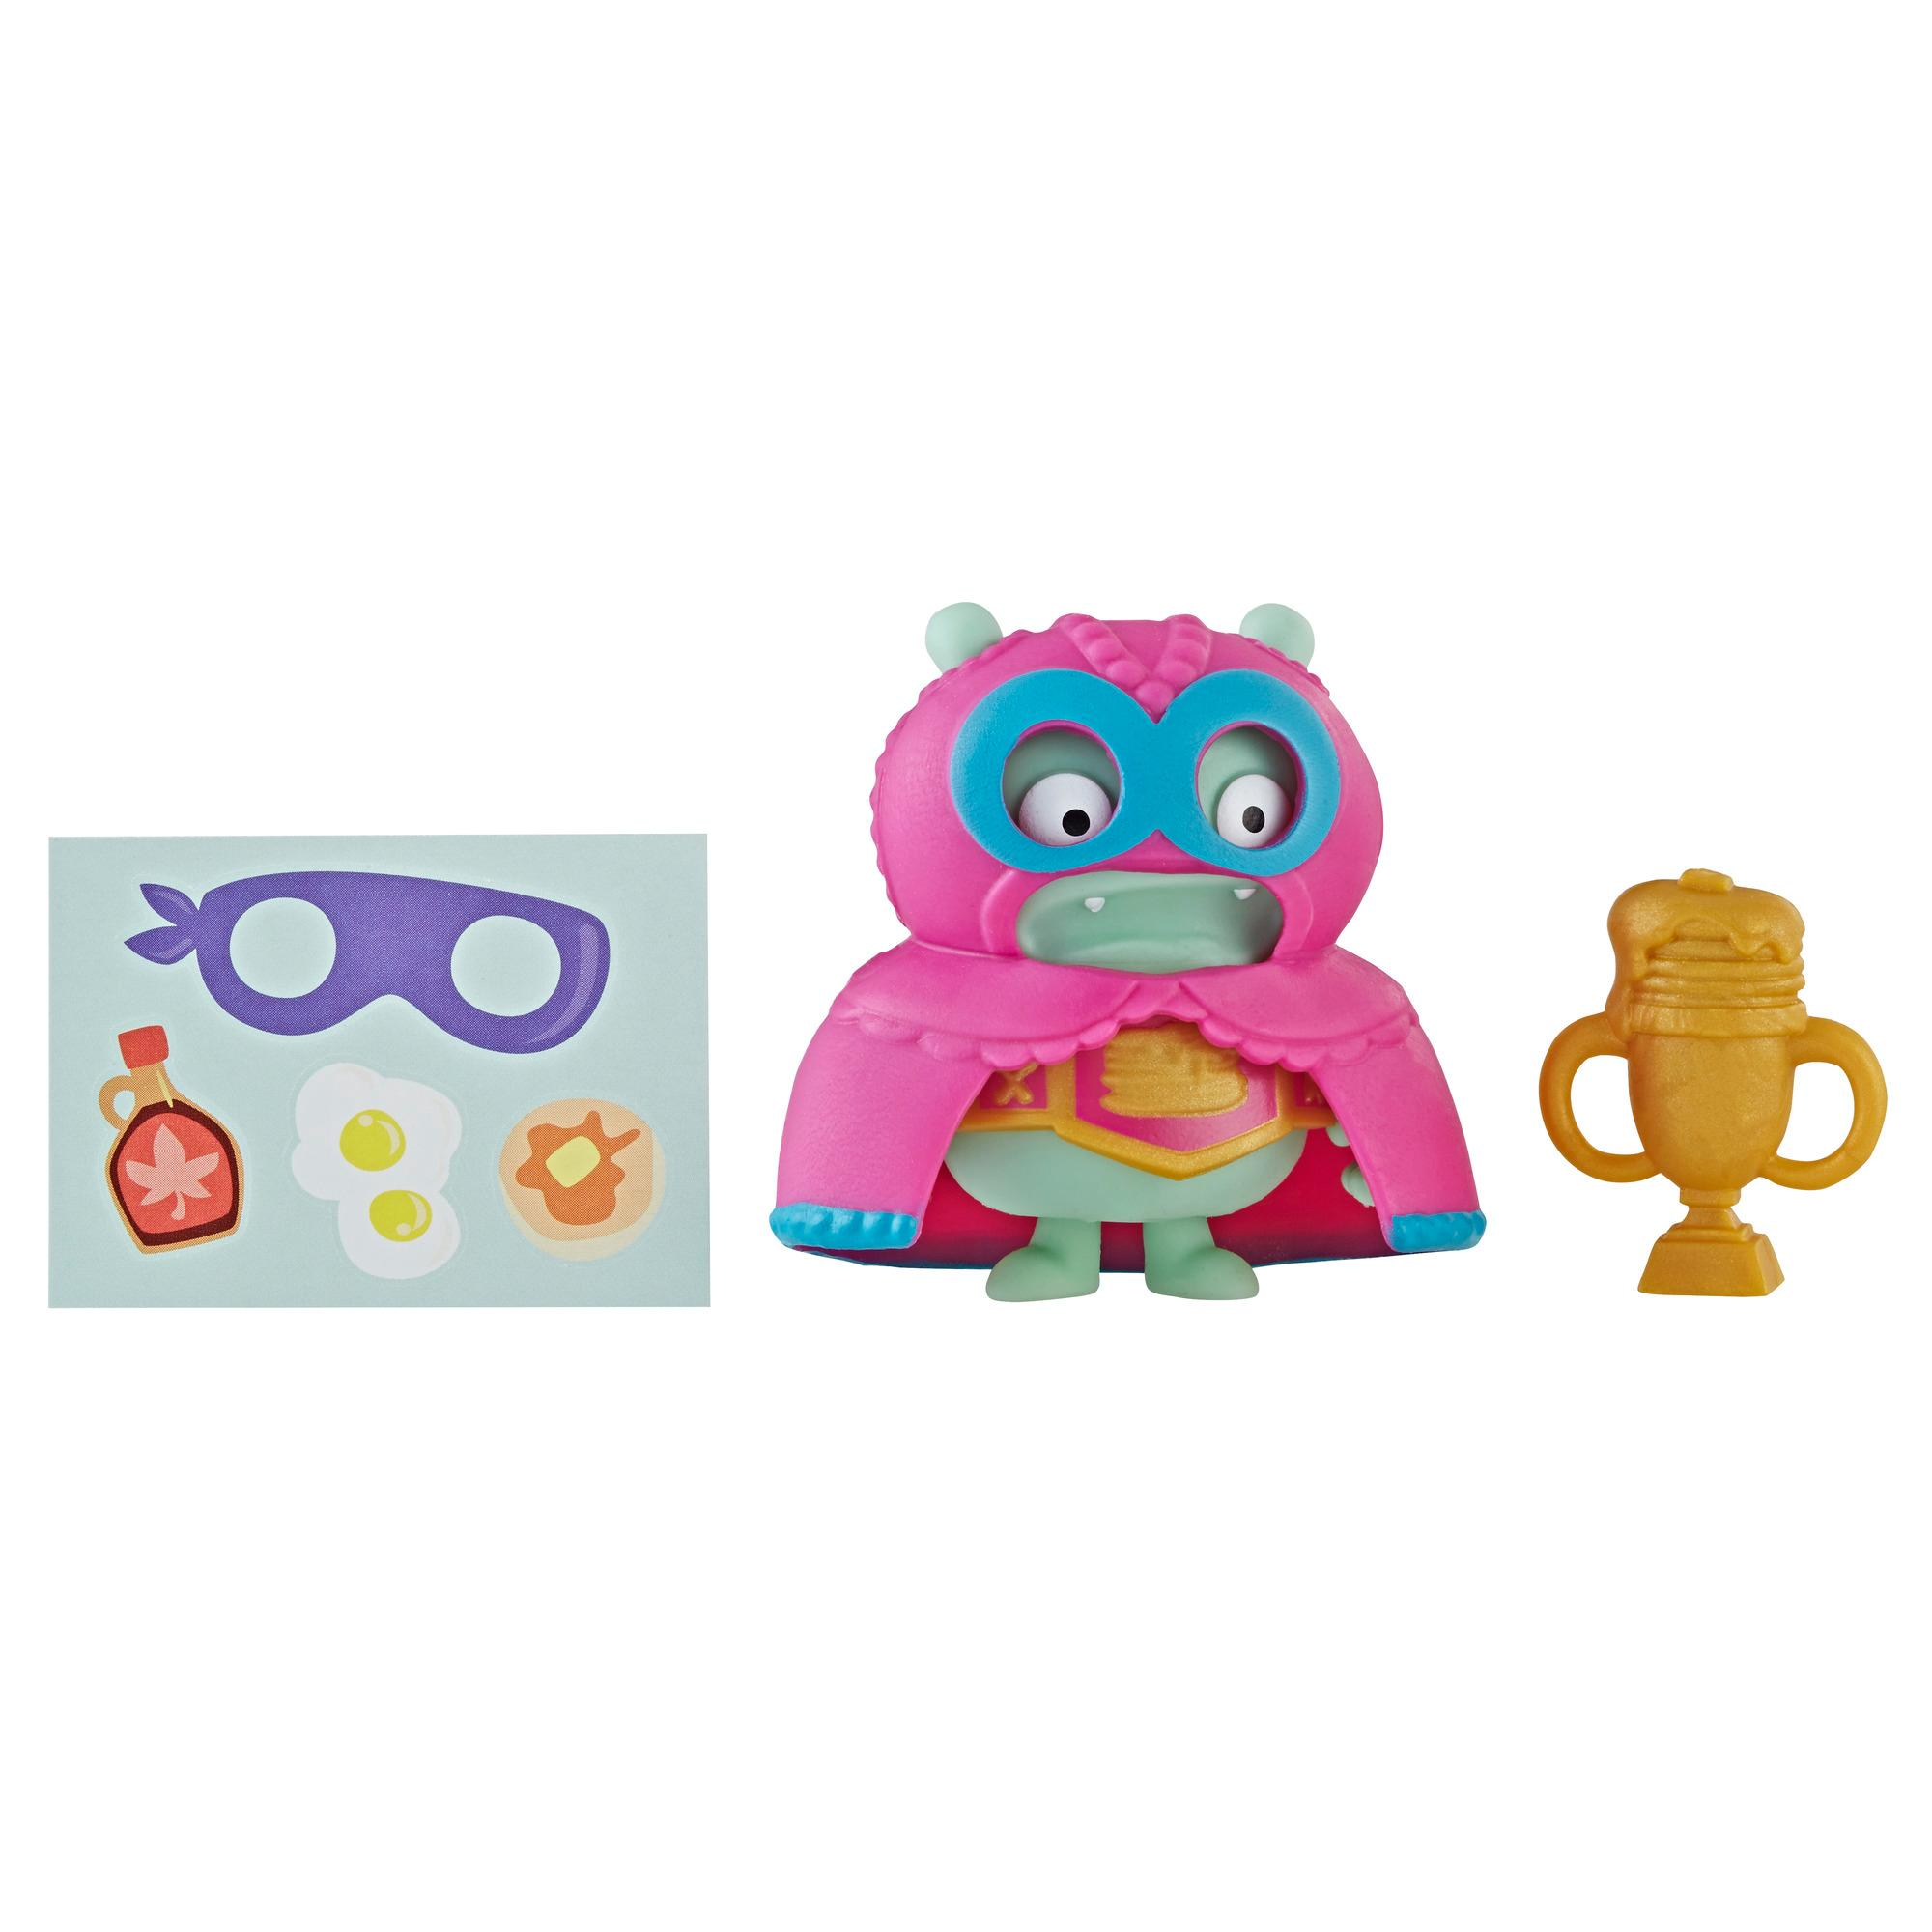 UglyDolls Surprise Disguise Pancake Champ Jeero Toy, Figure and Accessories